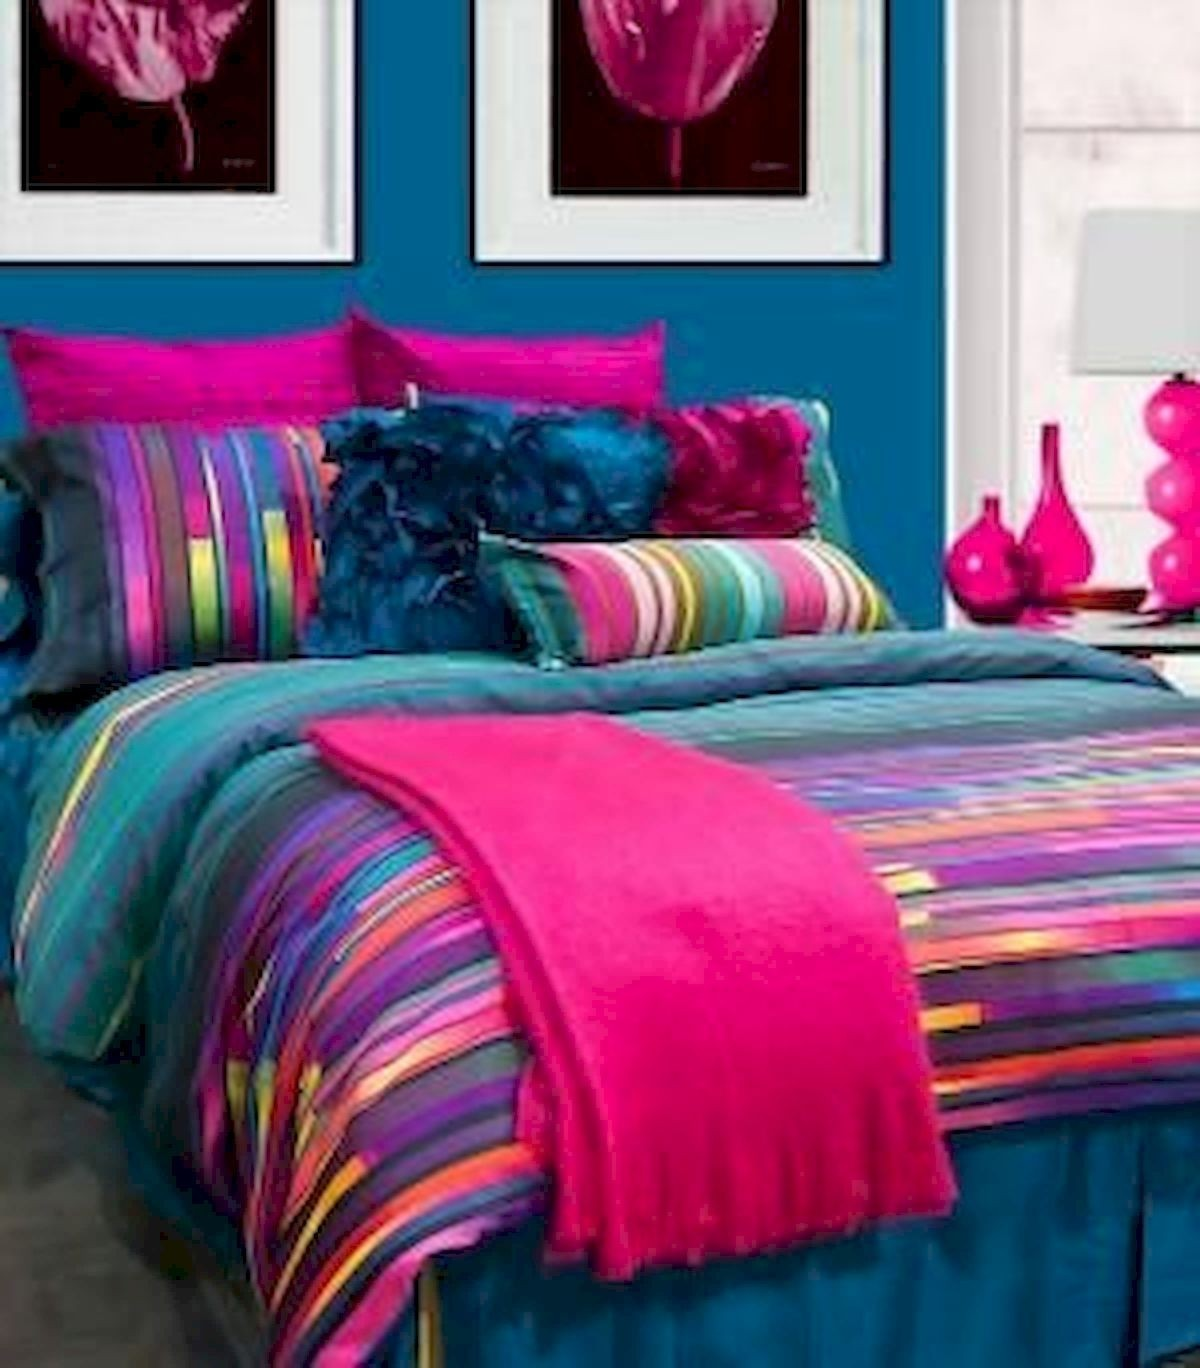 Bright colored bed sheets